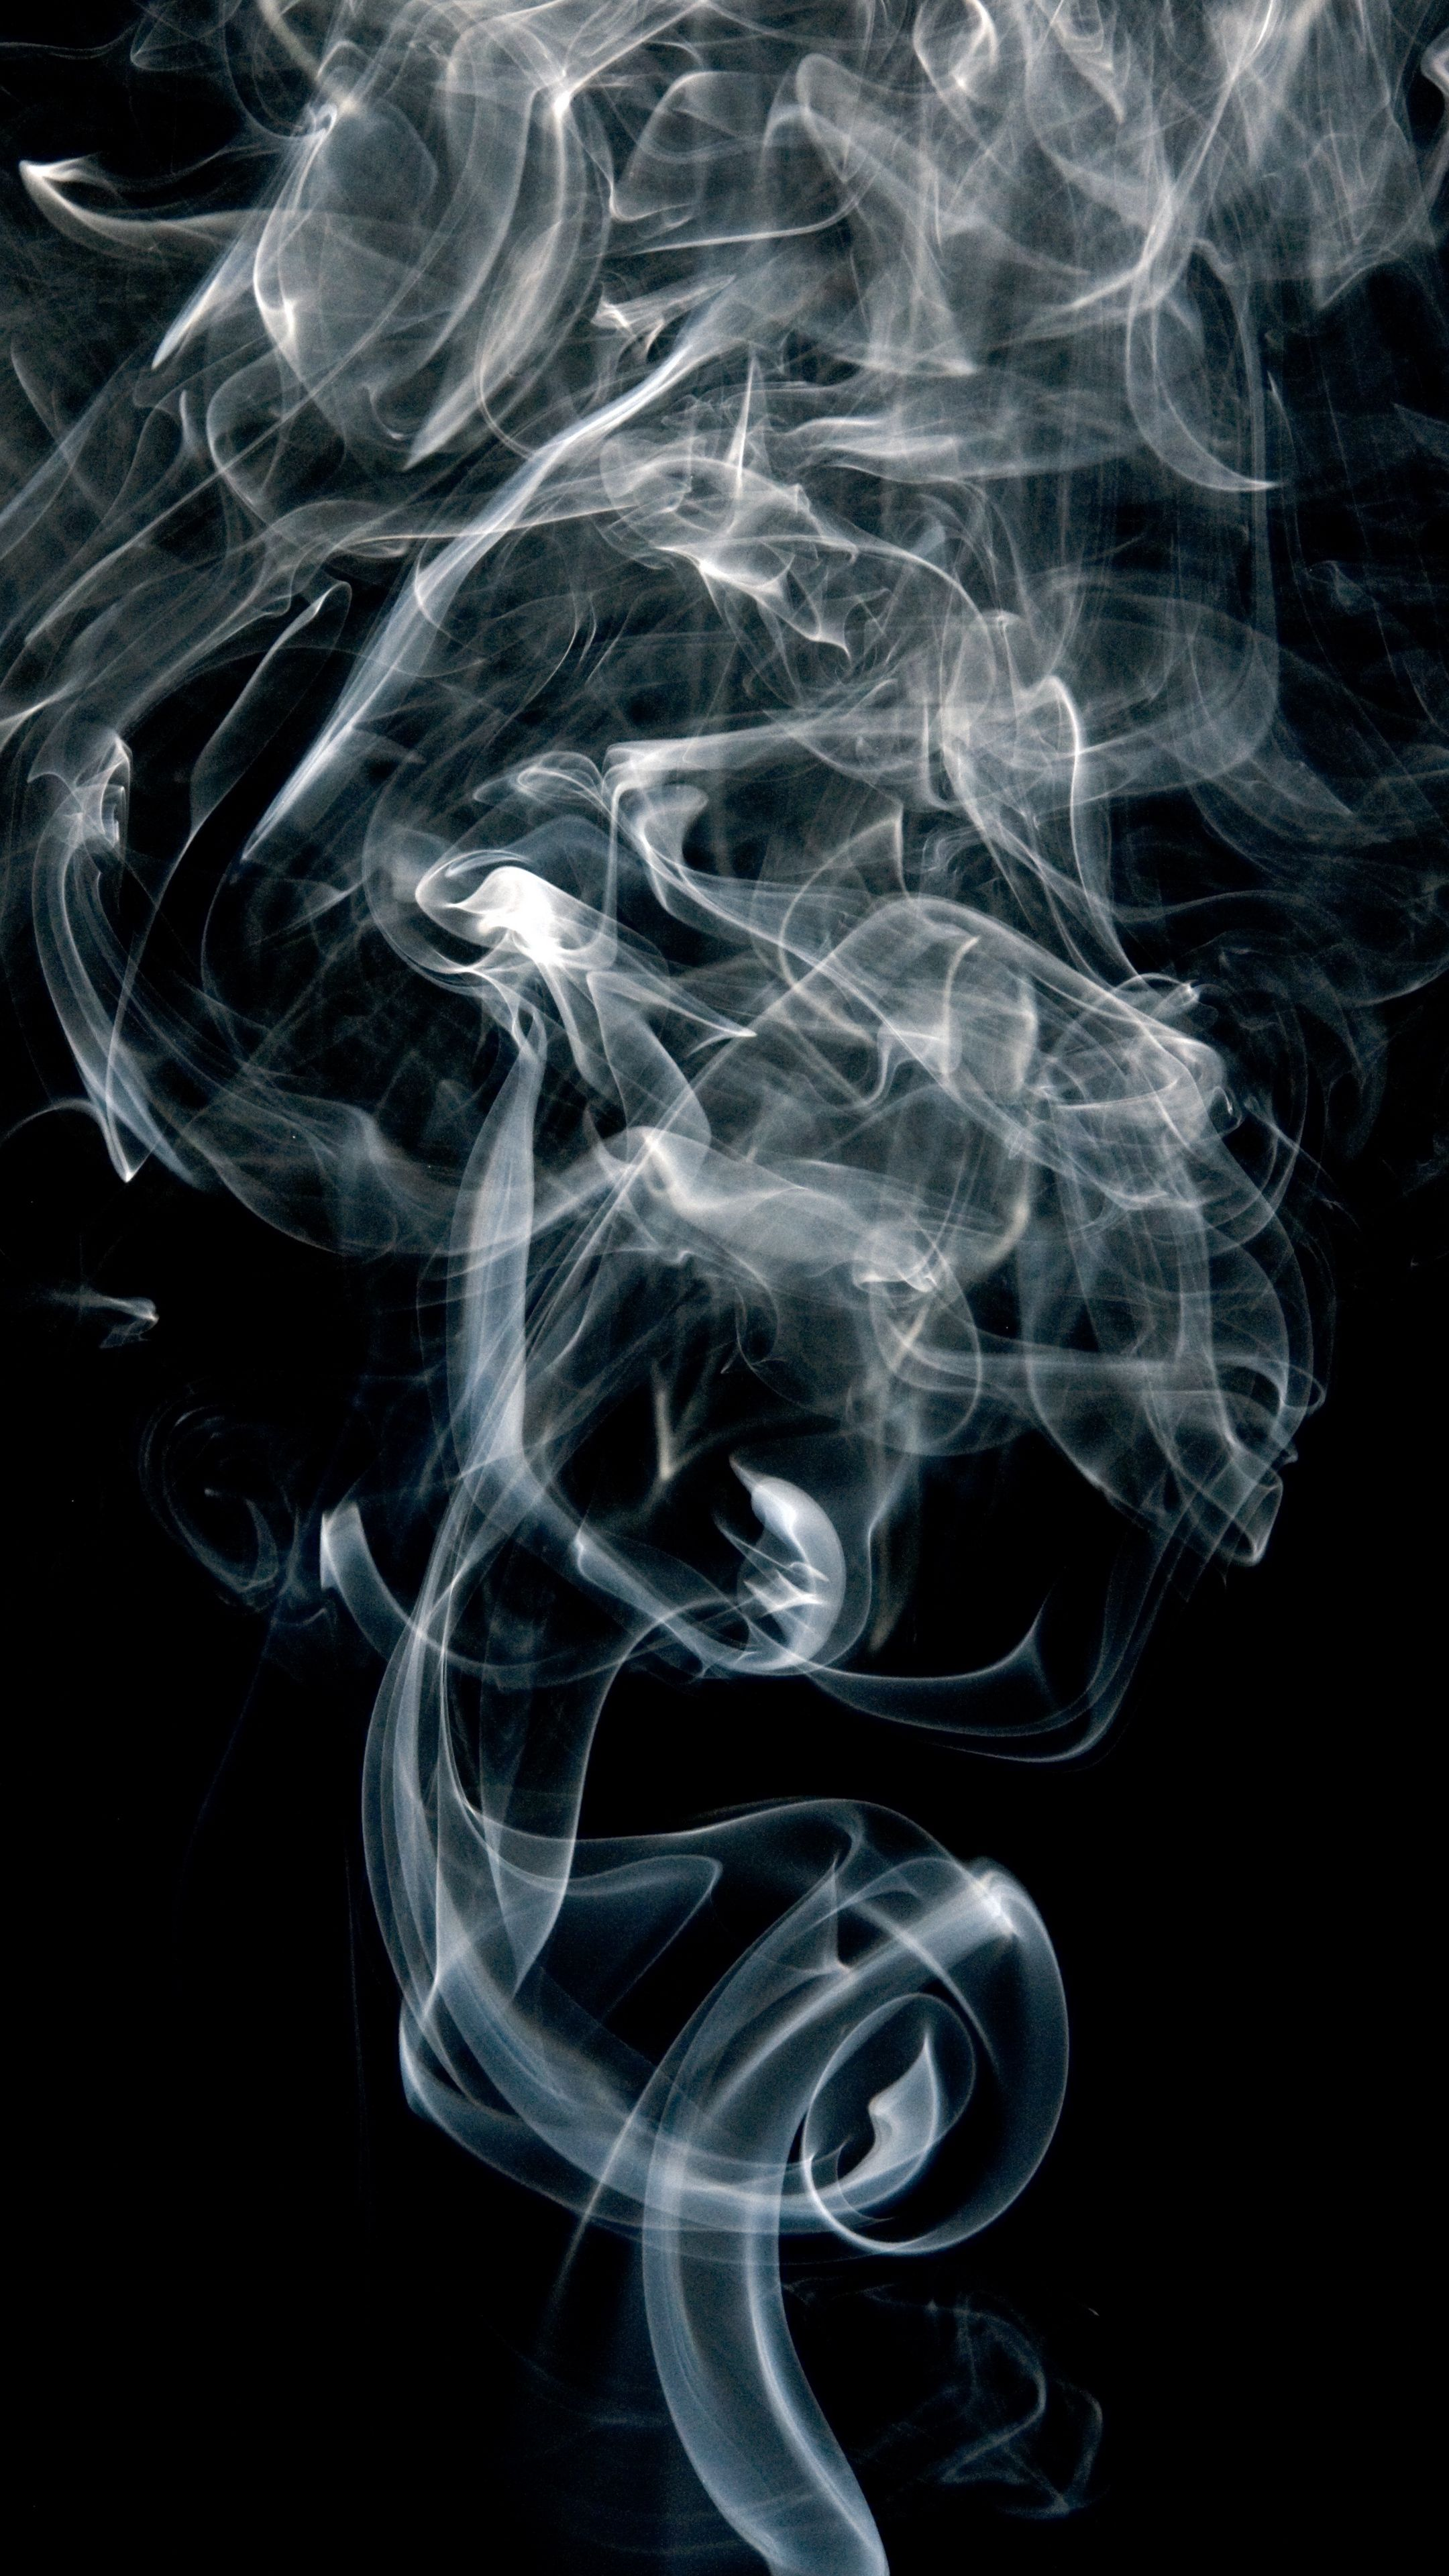 Abstract Smoke Shroud Smokepuffs Darkbackground